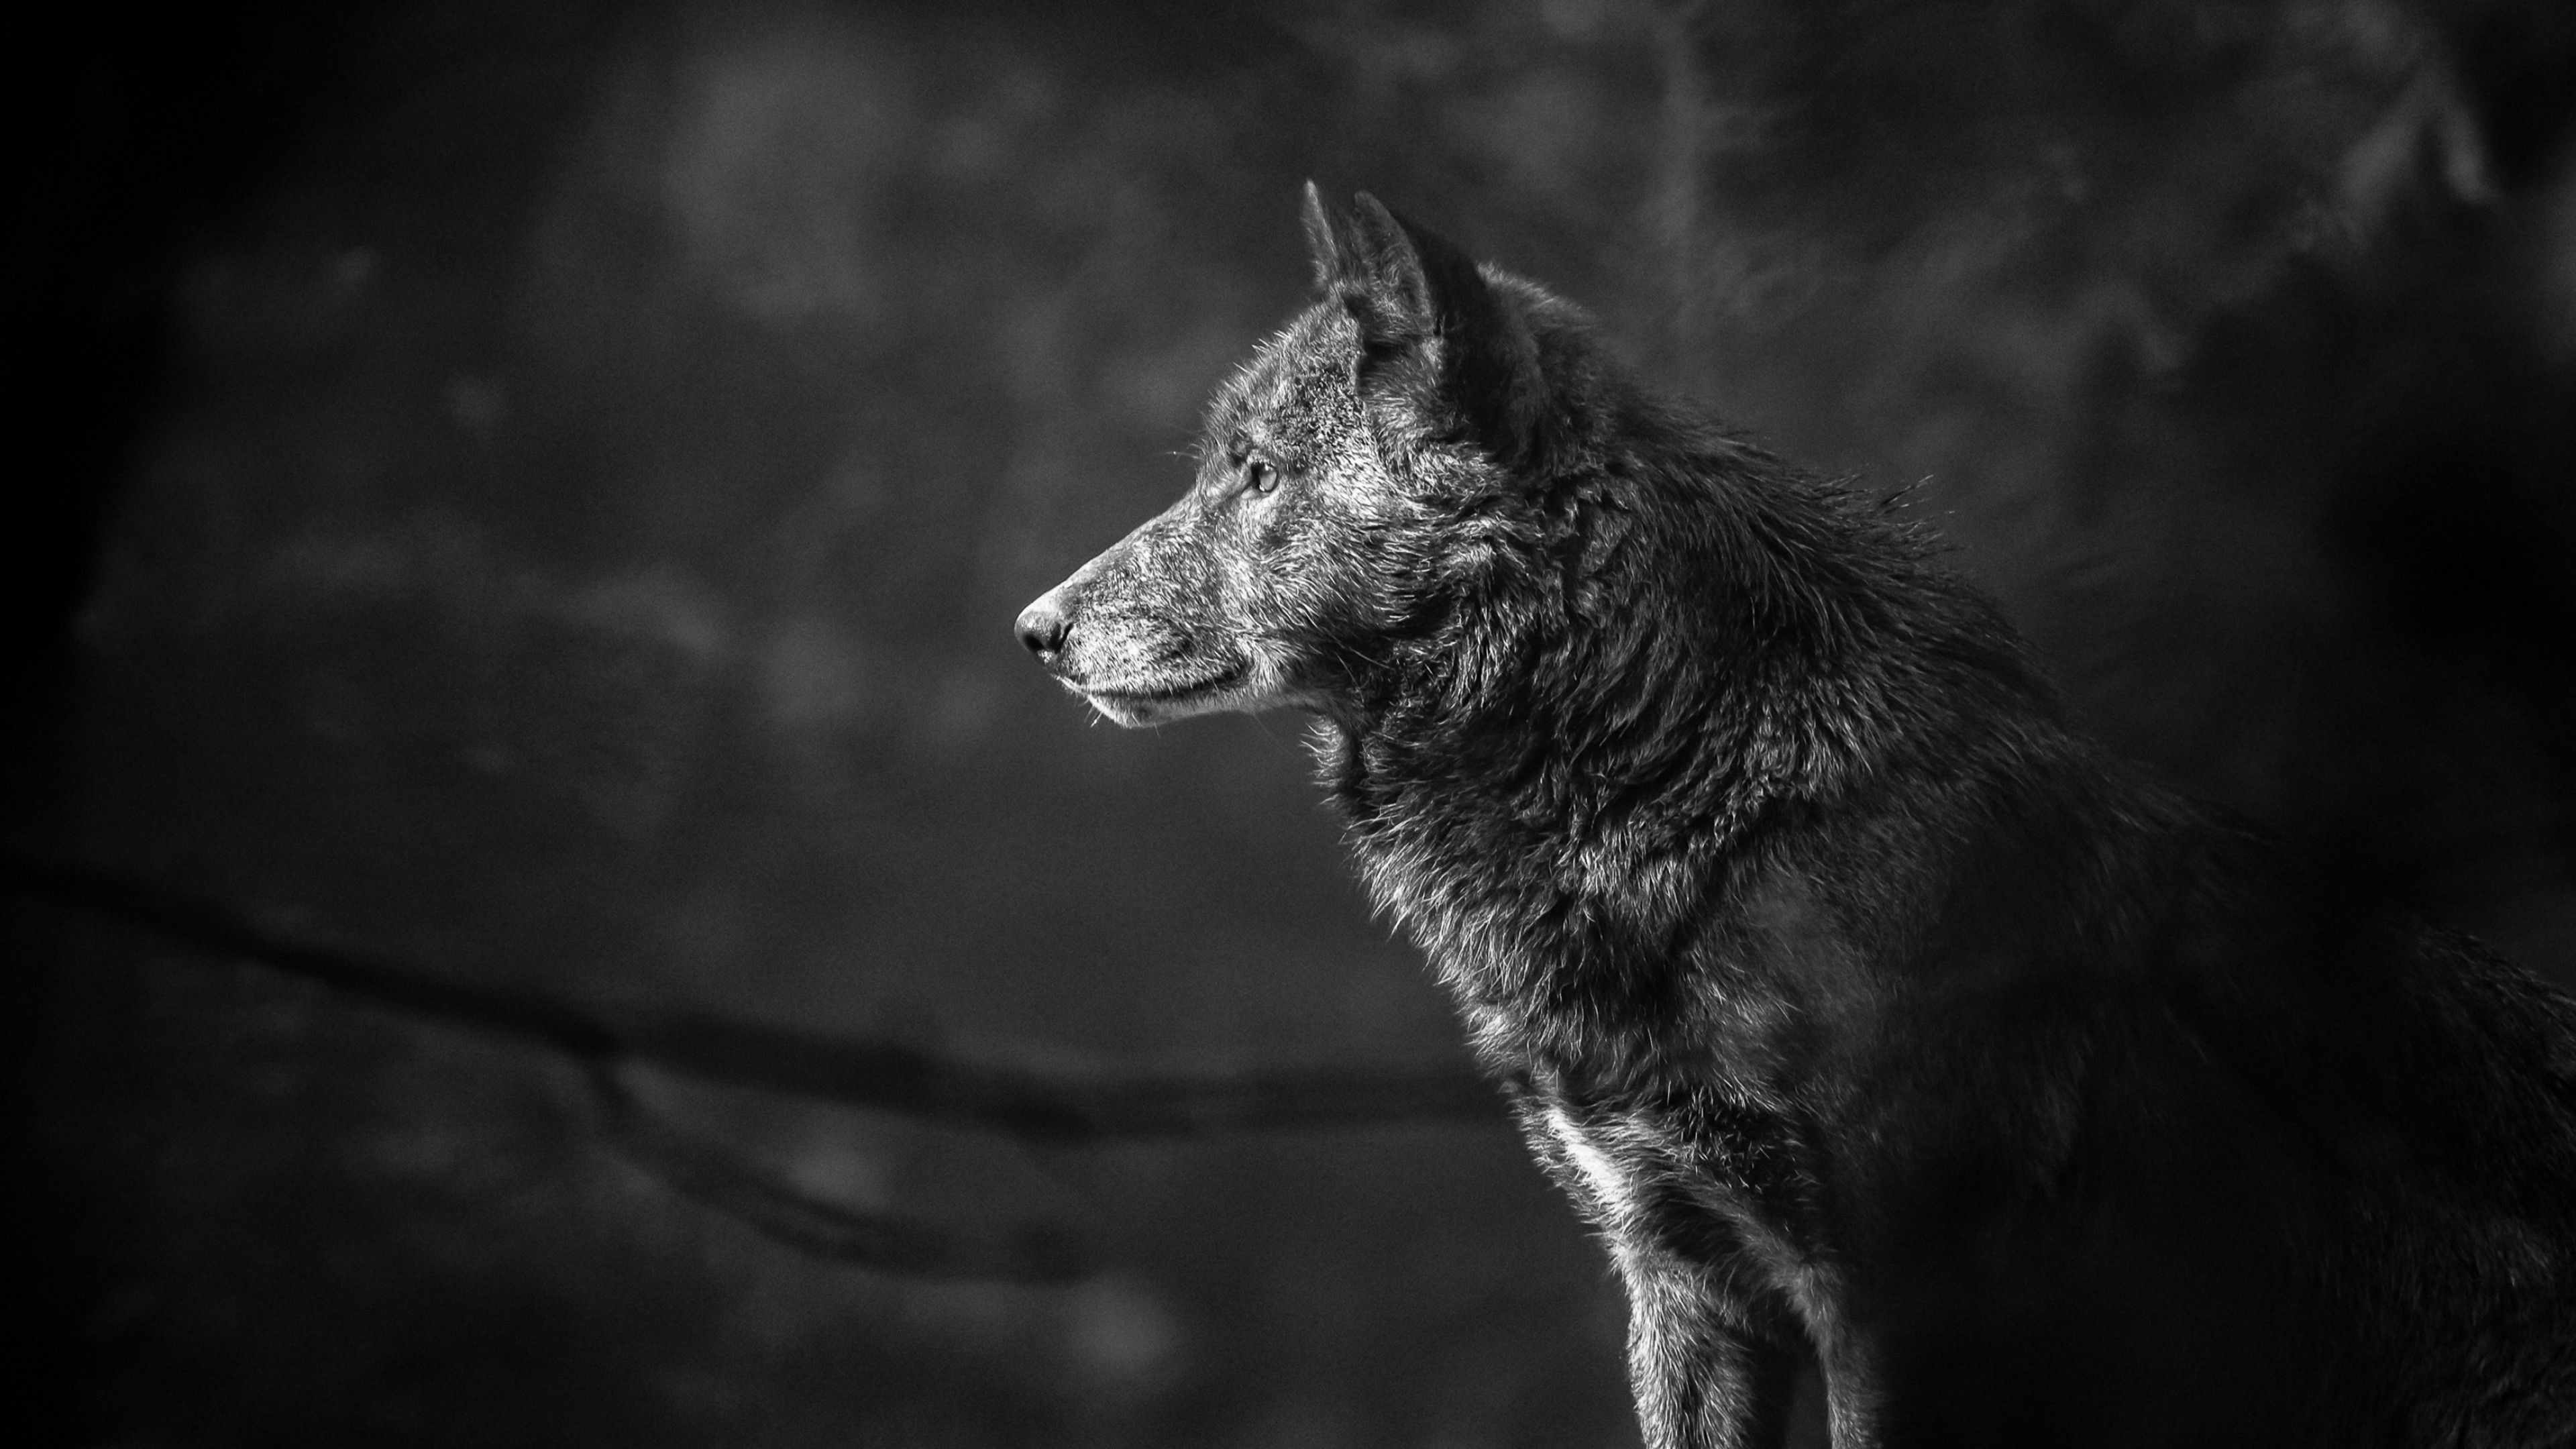 Wolves 4K Wallpapers - Top Free Wolves 4K Backgrounds ...